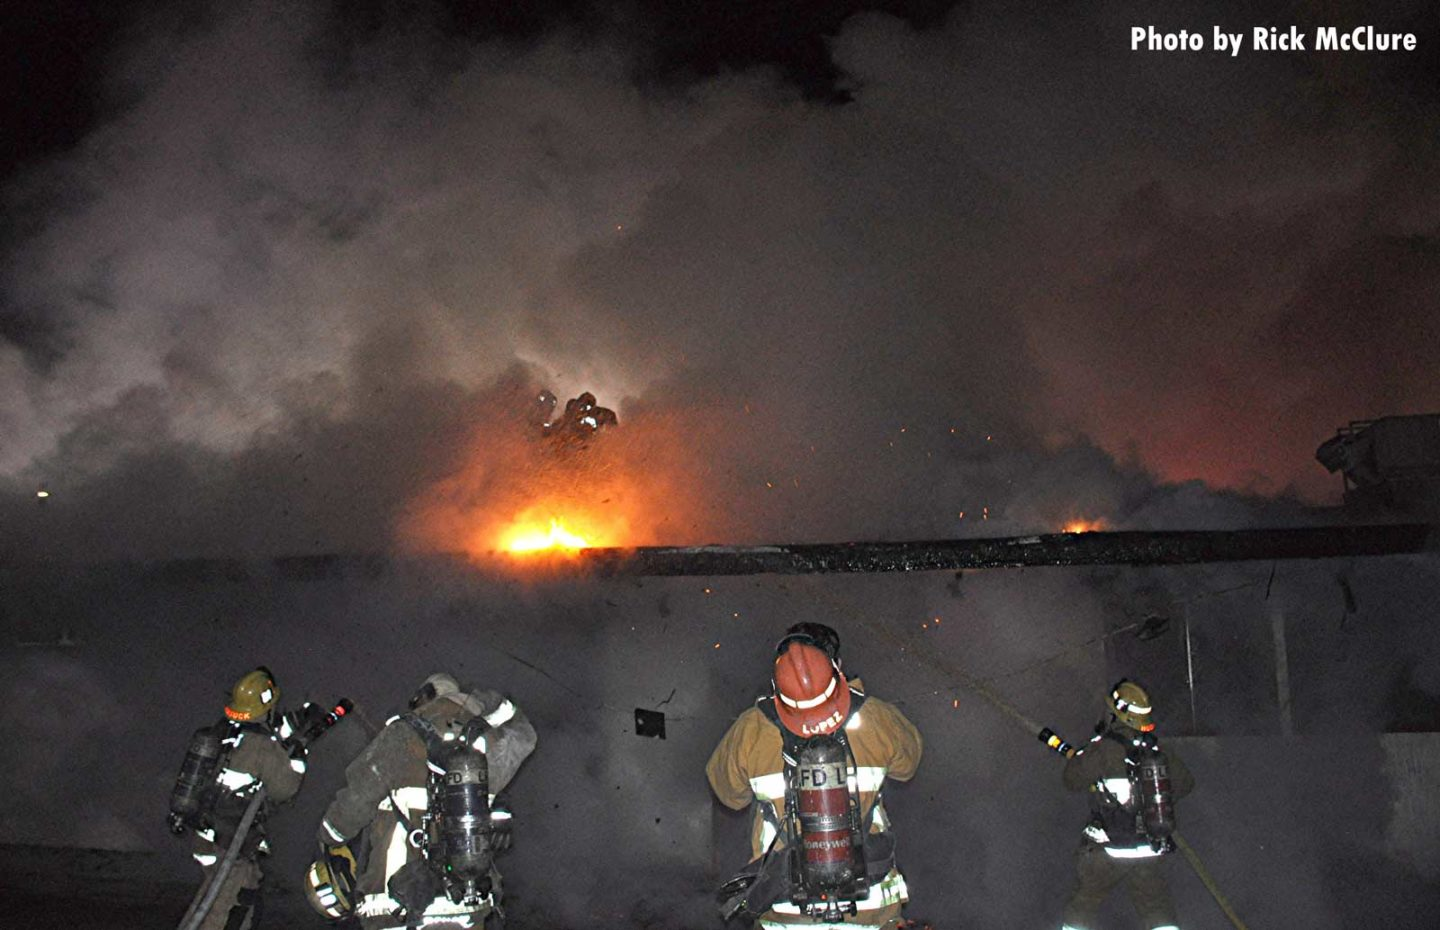 Smoke and flames from roofline with firefighters on the ground